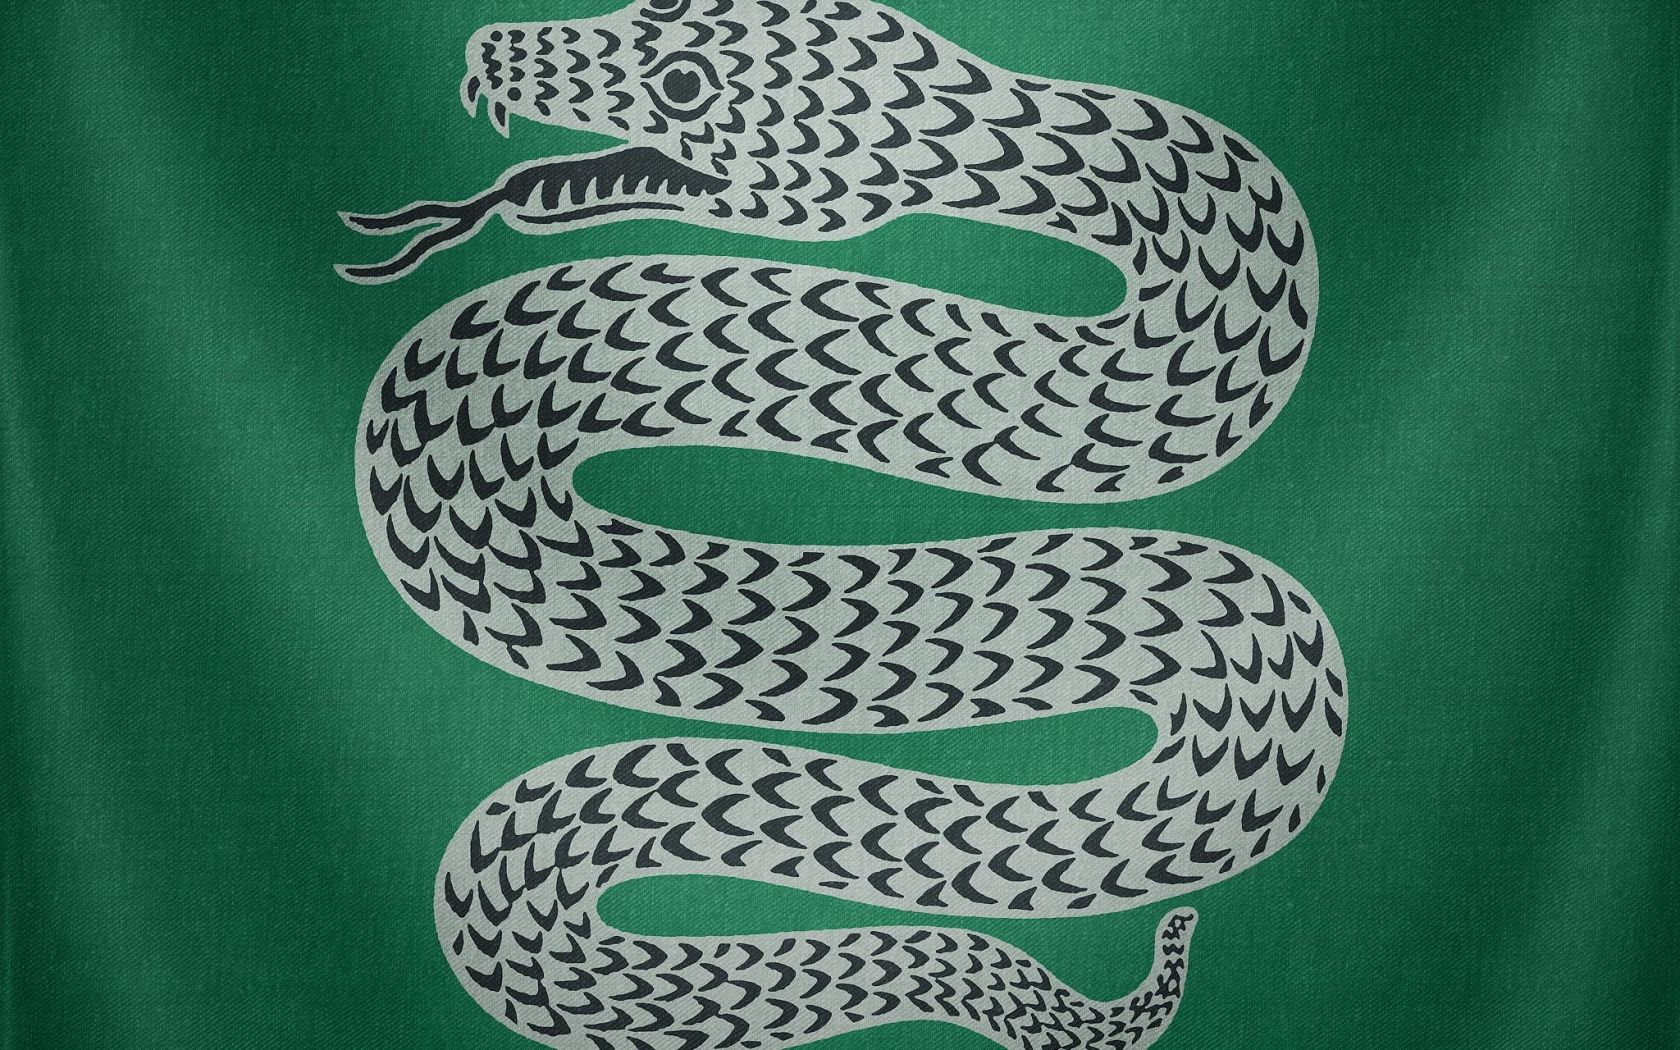 1680x1050 2048x2048px Slytherin iPhone Wallpaper - WallpaperSafari